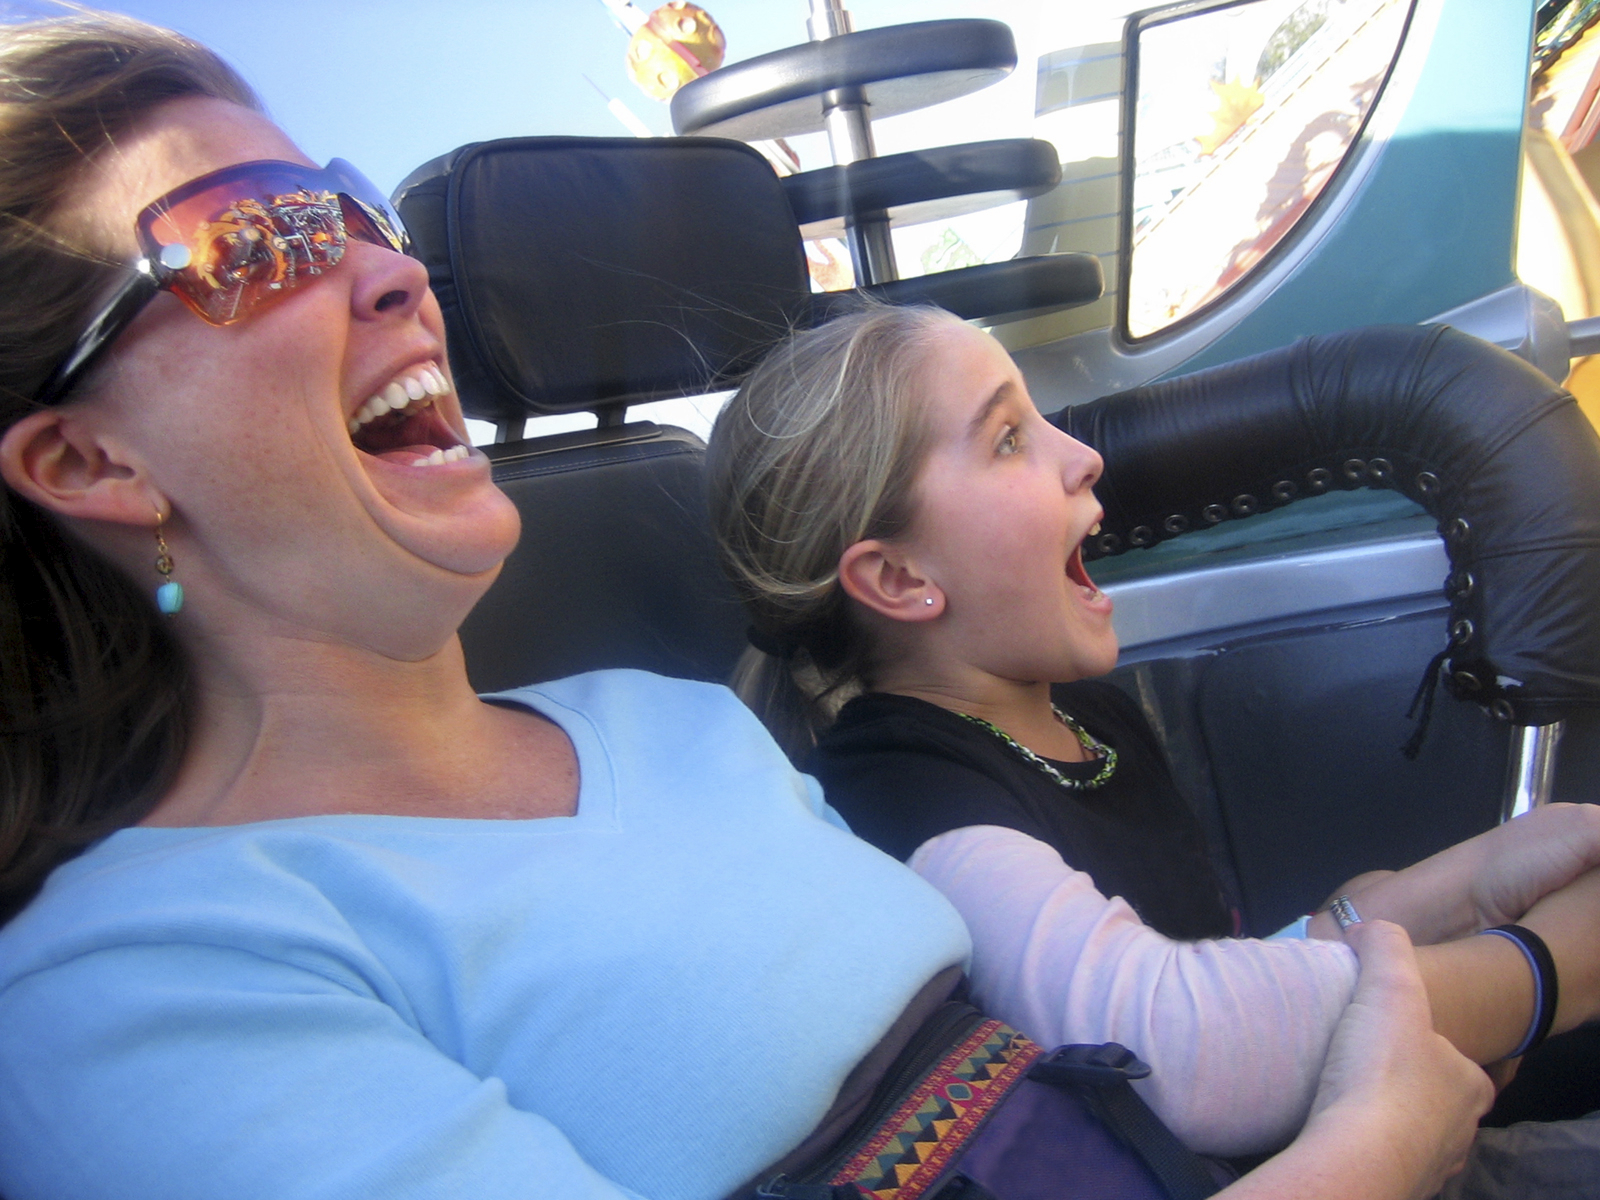 Mom and daughter screaming and laughing on a roller coaster theme park ride